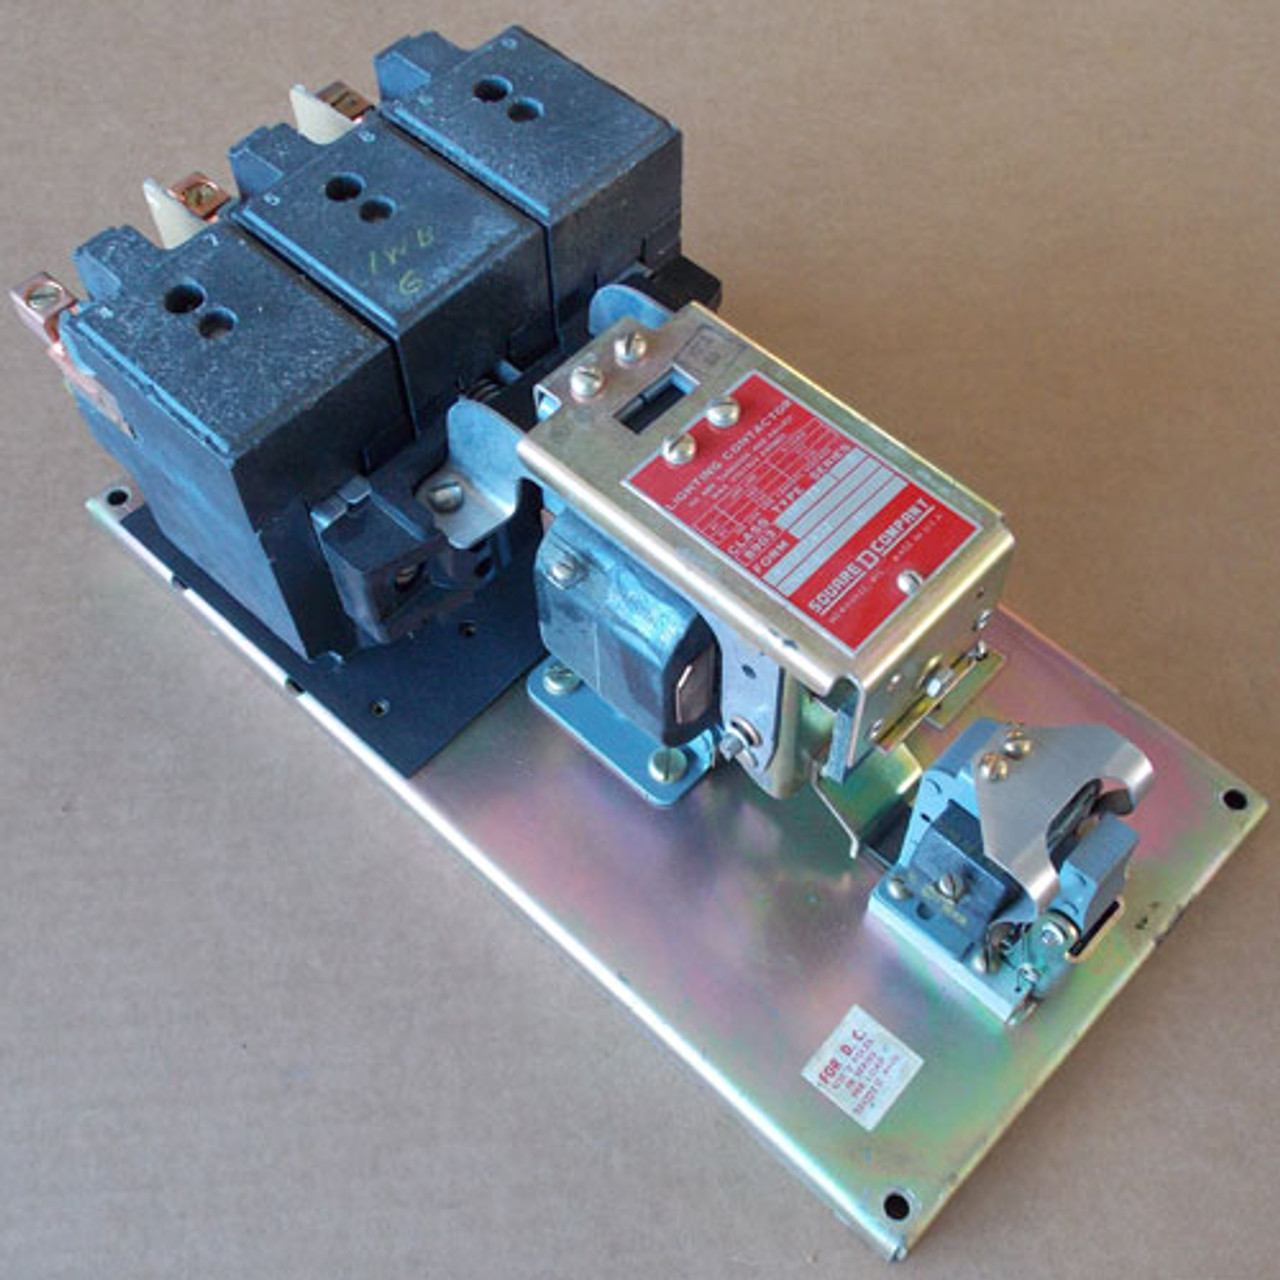 Square D 8903-QG11 3 Pole 100 Amp Lighting Contactor 120V Open - Used